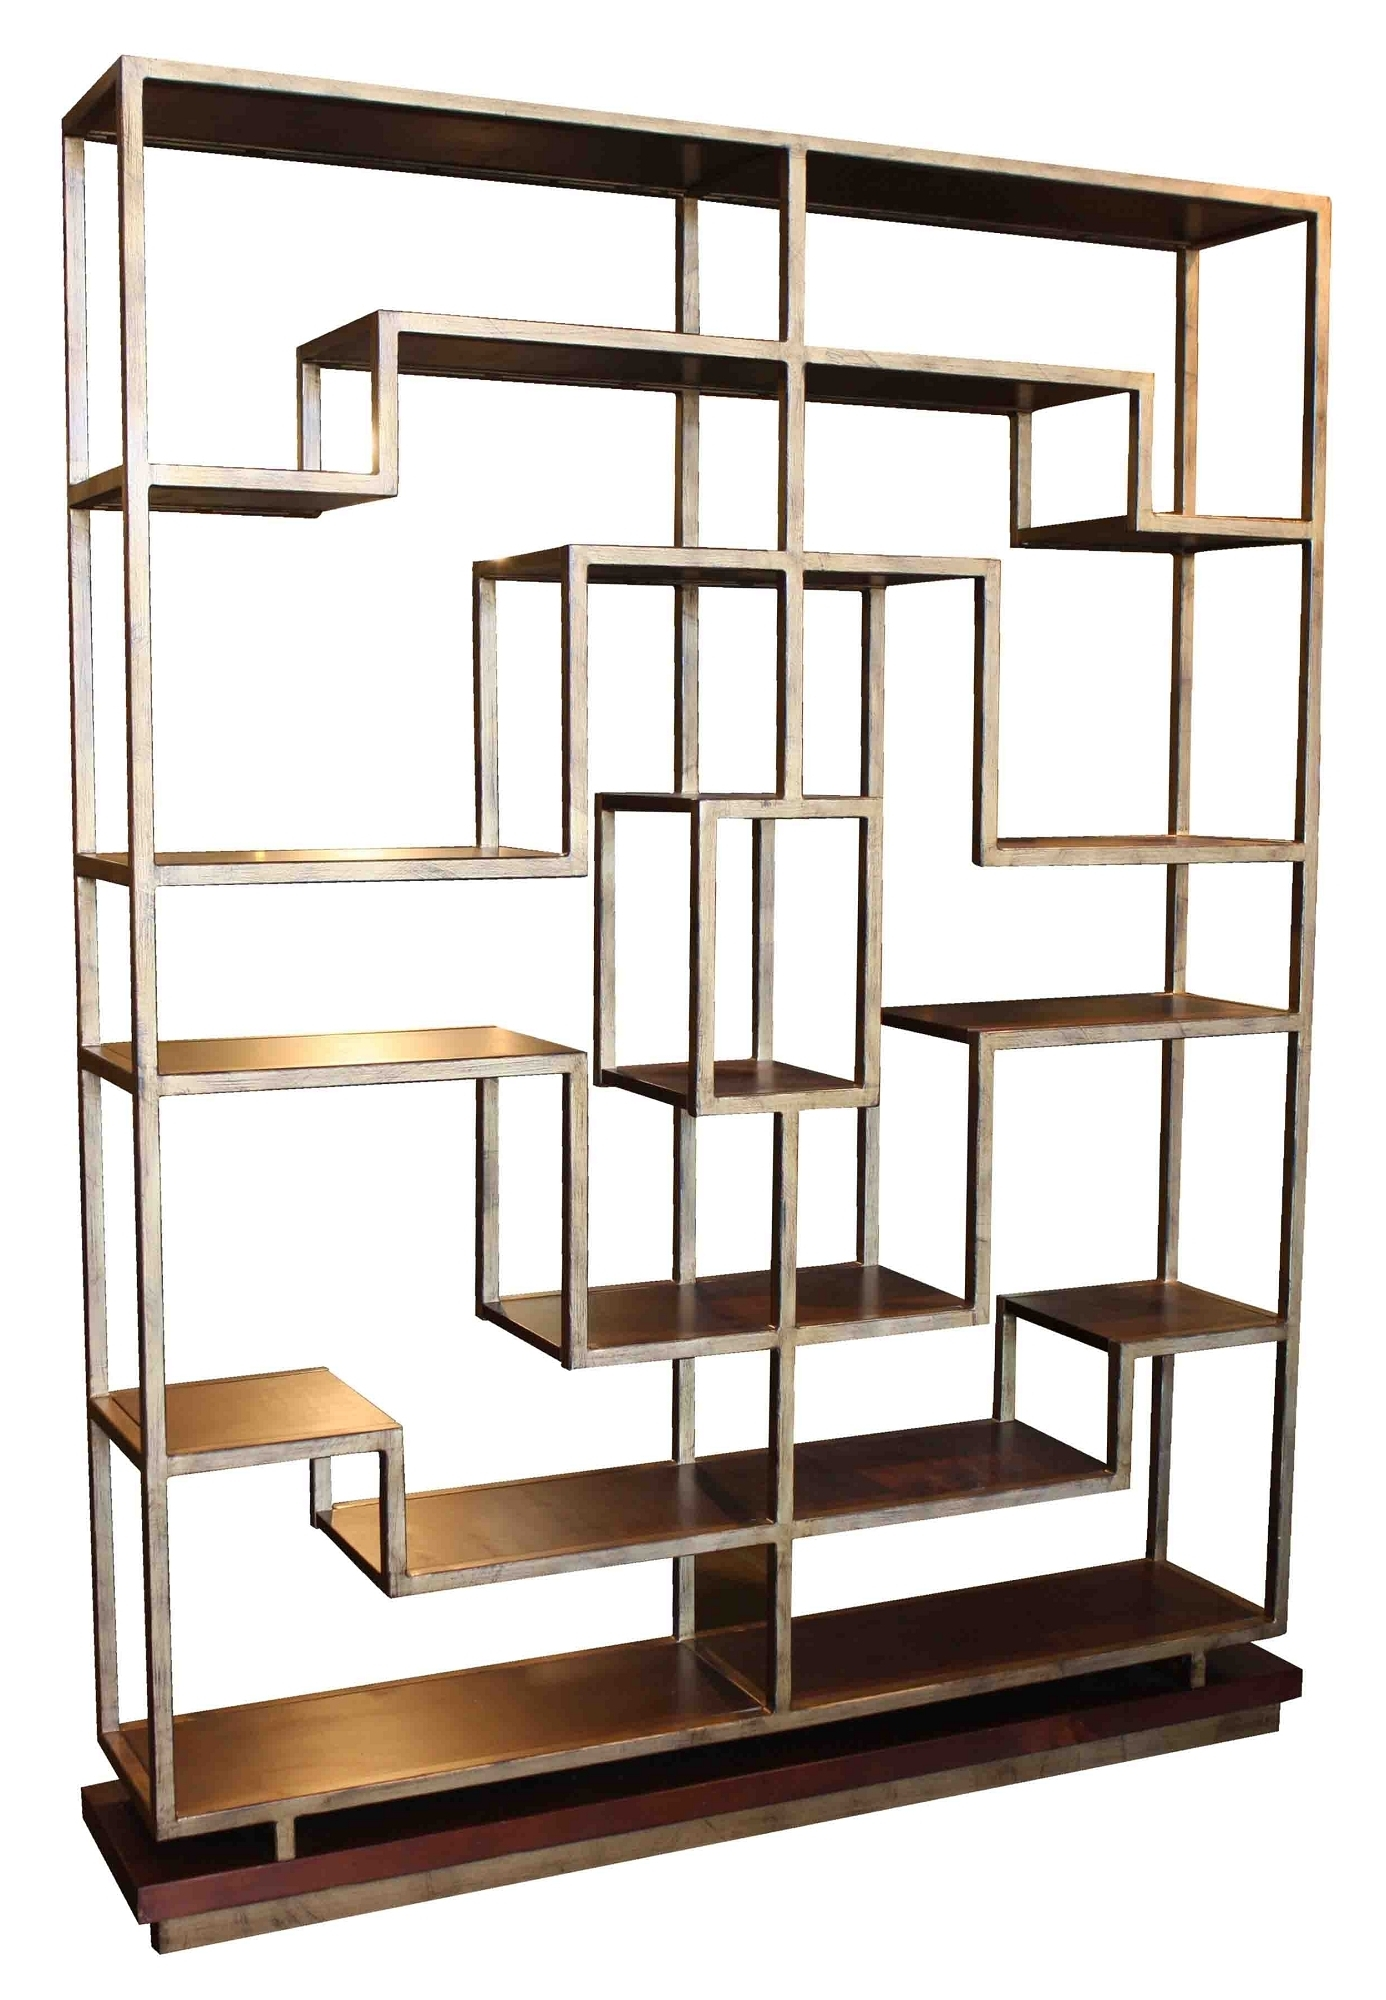 Metal And Wood Bookcases In Most Current Bookcases Ideas: Bookcases Wood Metal And Glass Crate And Barrel (View 8 of 15)